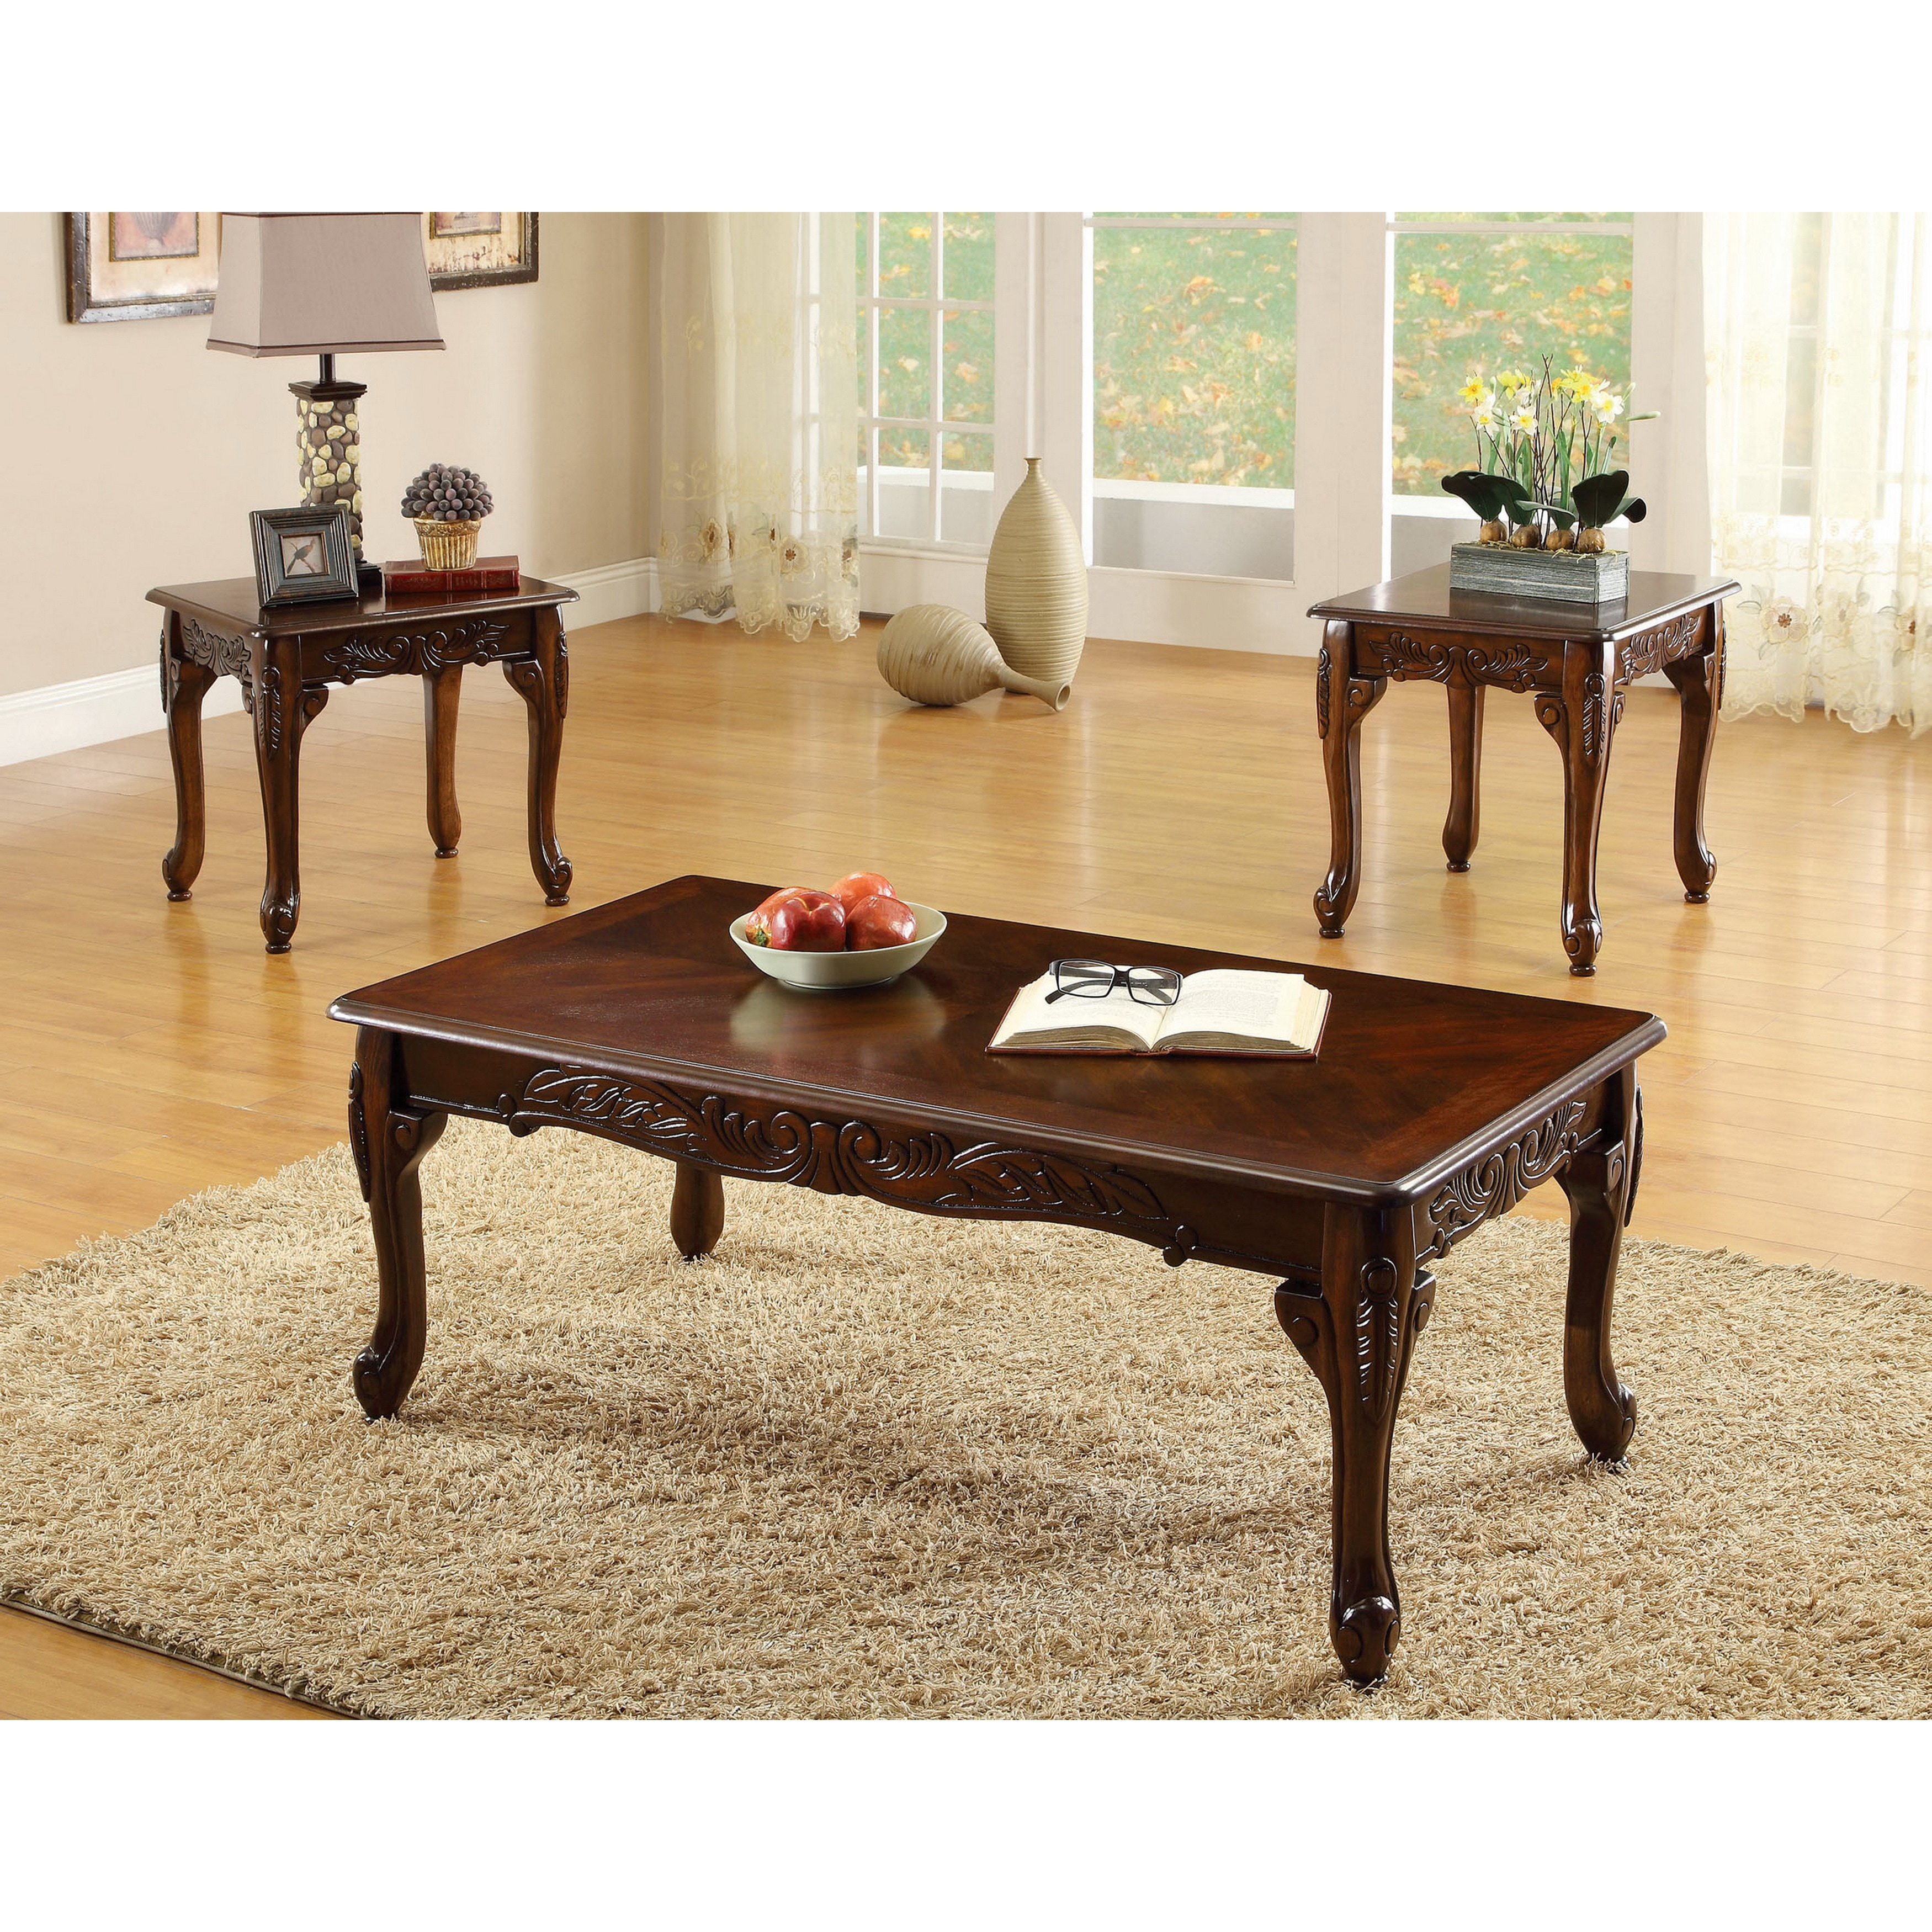 Furniture Of America Mariefey Clic Style 3 Piece Cherry Coffee And End Table Set